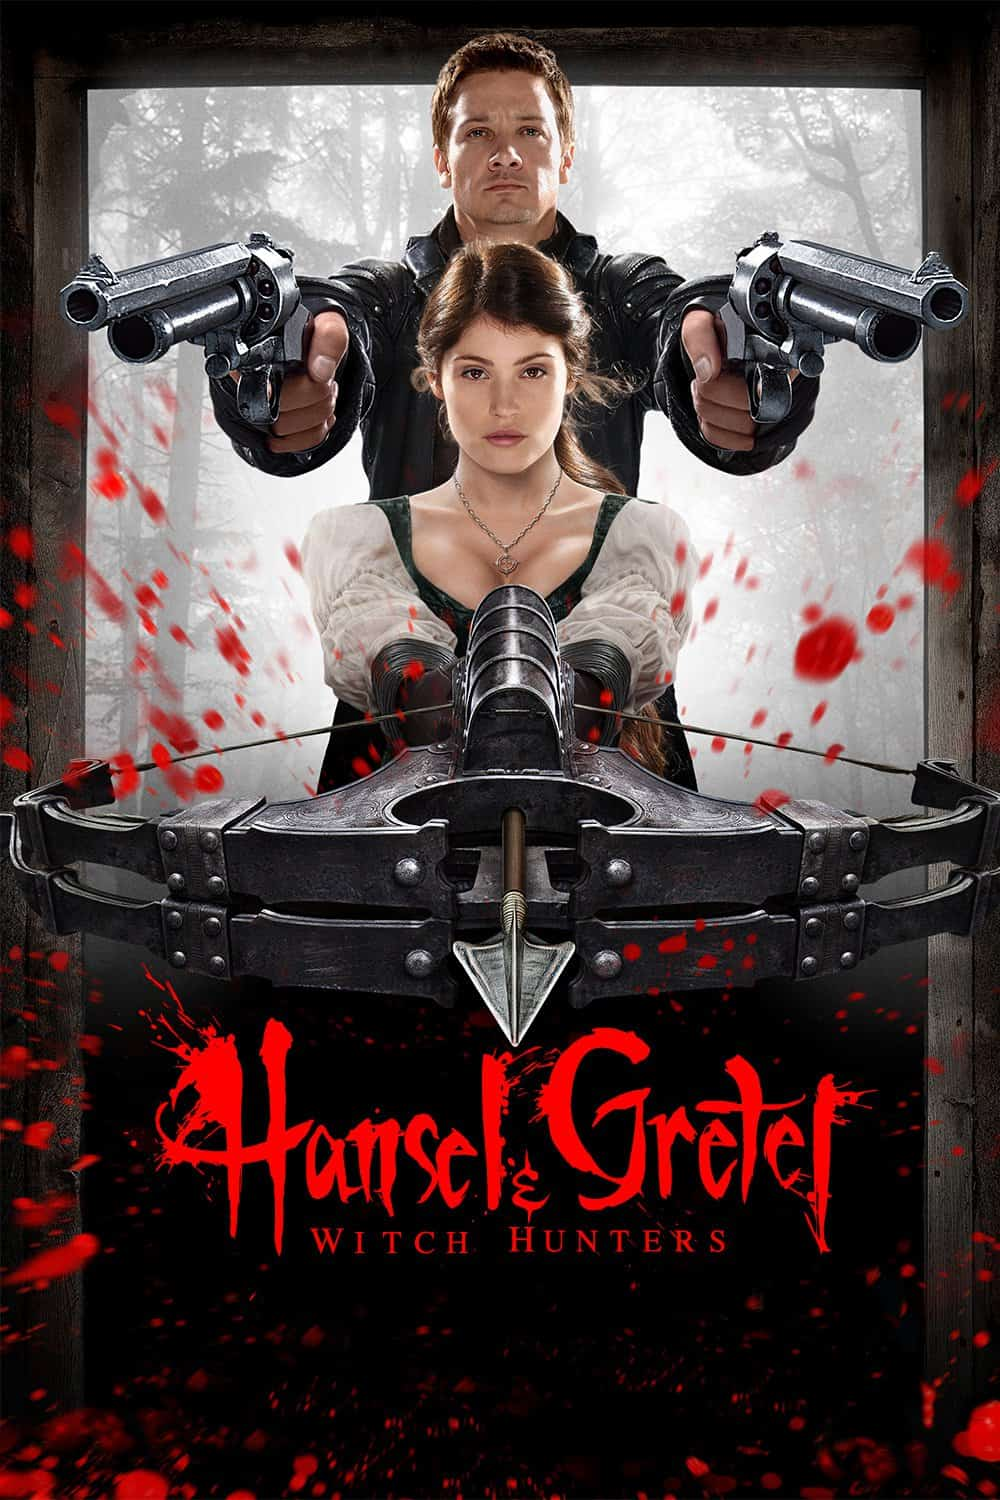 Hansel and Gretel: Witch Hunters, 2013